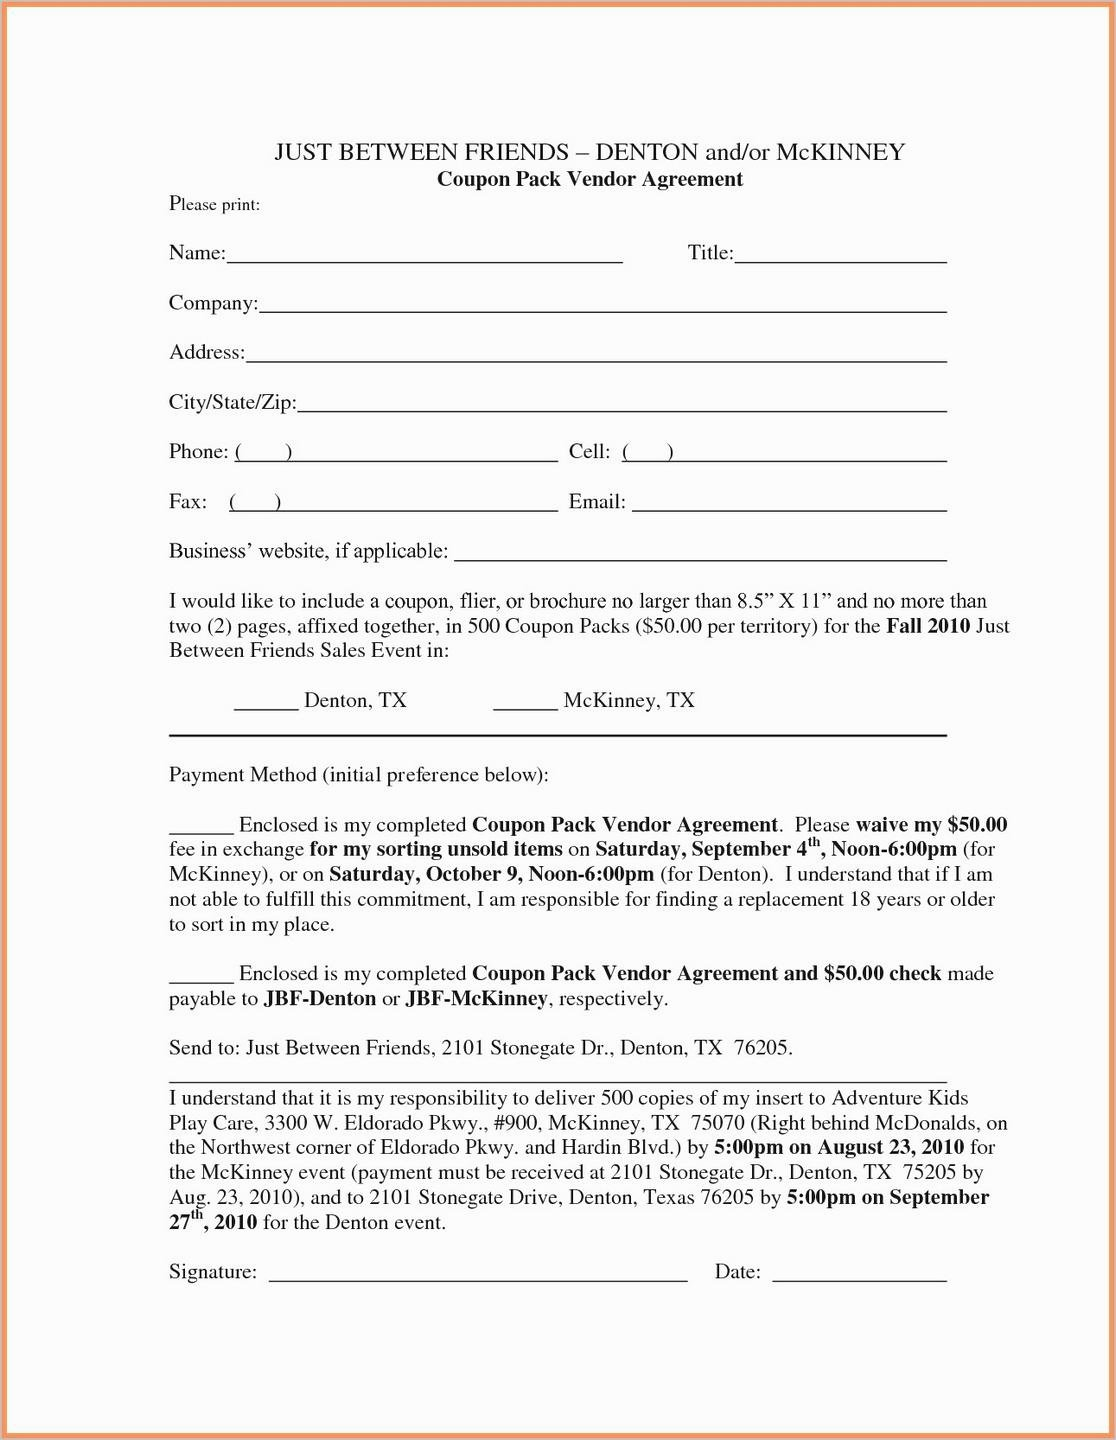 Contract Template Google Docs Best Of Electrical Service Agreement Sample Unique Google Docs